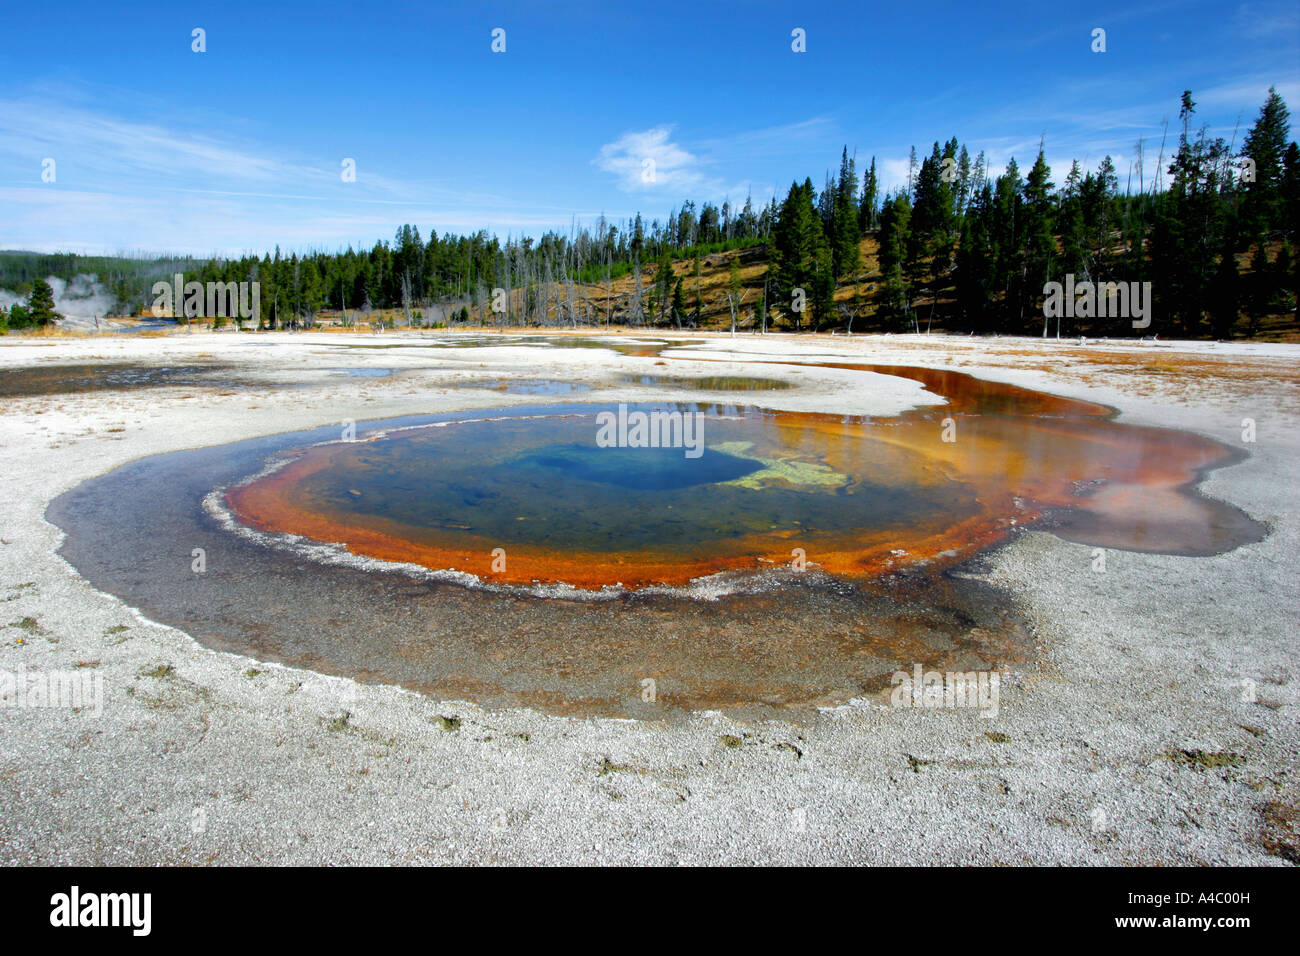 Hot spring dans Old Faithful Geyser, le parc national de Yellowstone, Wyoming Banque D'Images